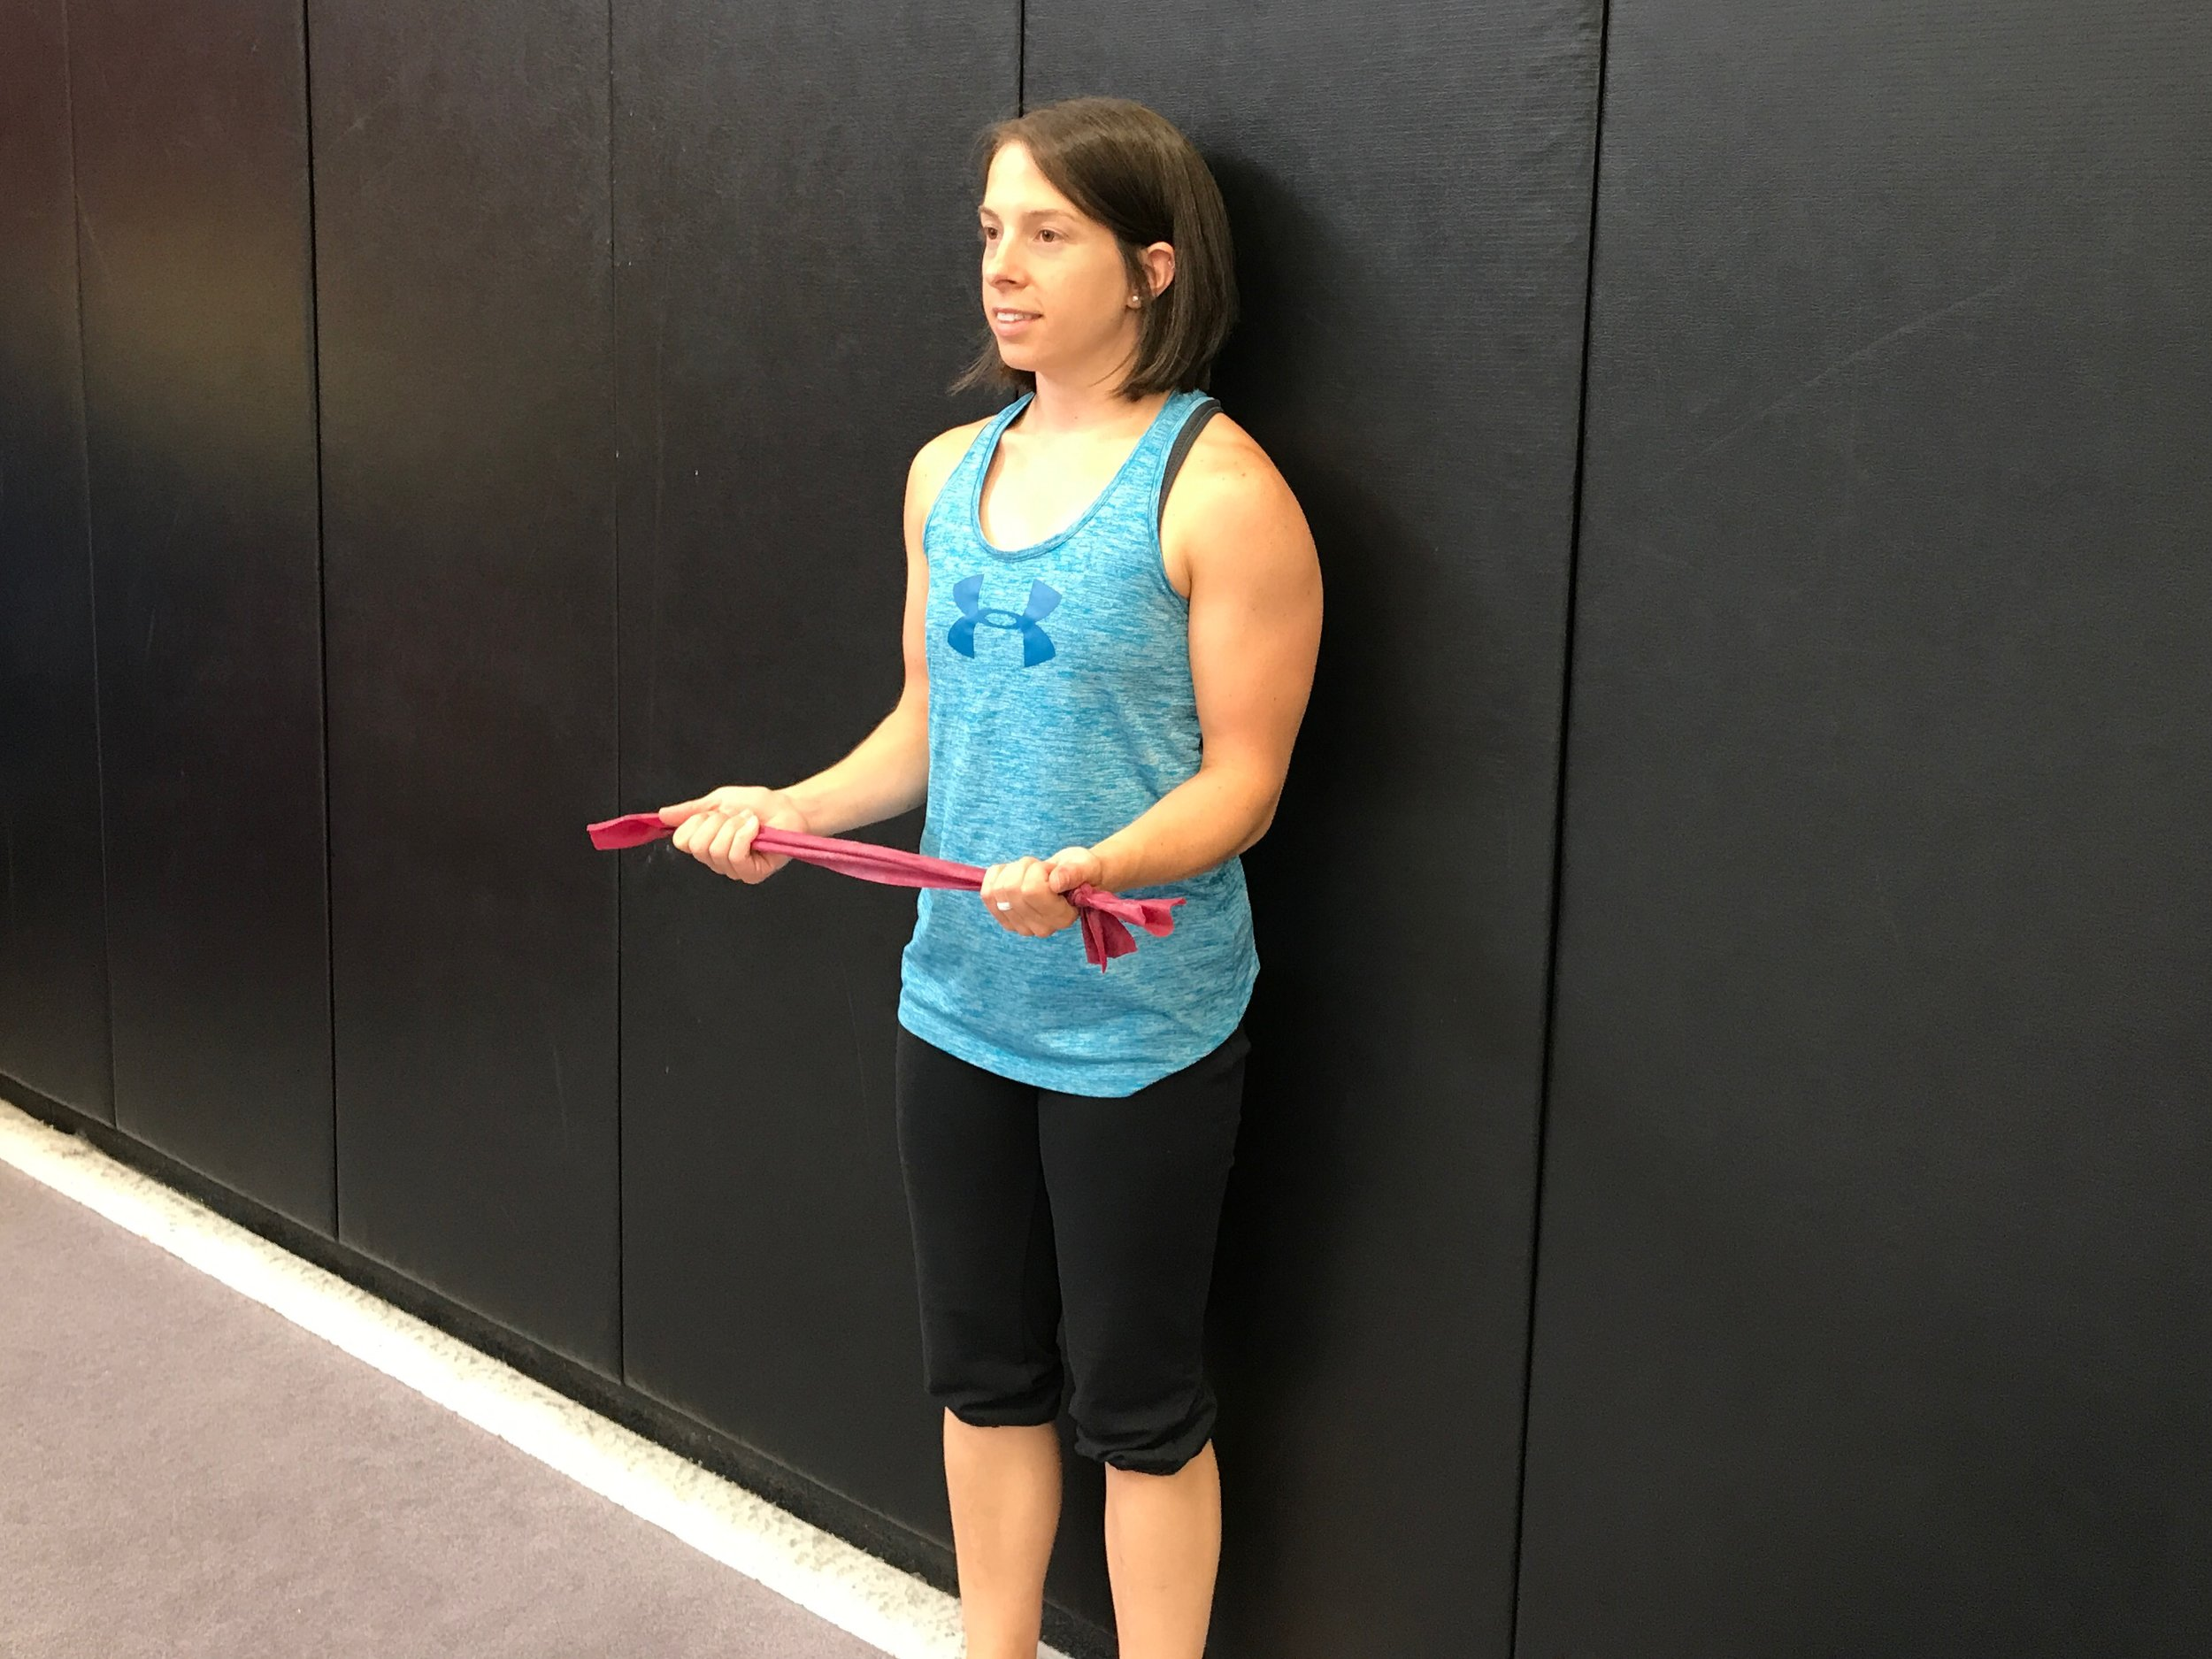 Starting position: Standing against the wall with your back flat, head neutral. Hold the band with palms up.  The elbows can be bent (as shown) or you can hold the arms more straight with the band down by the waist.